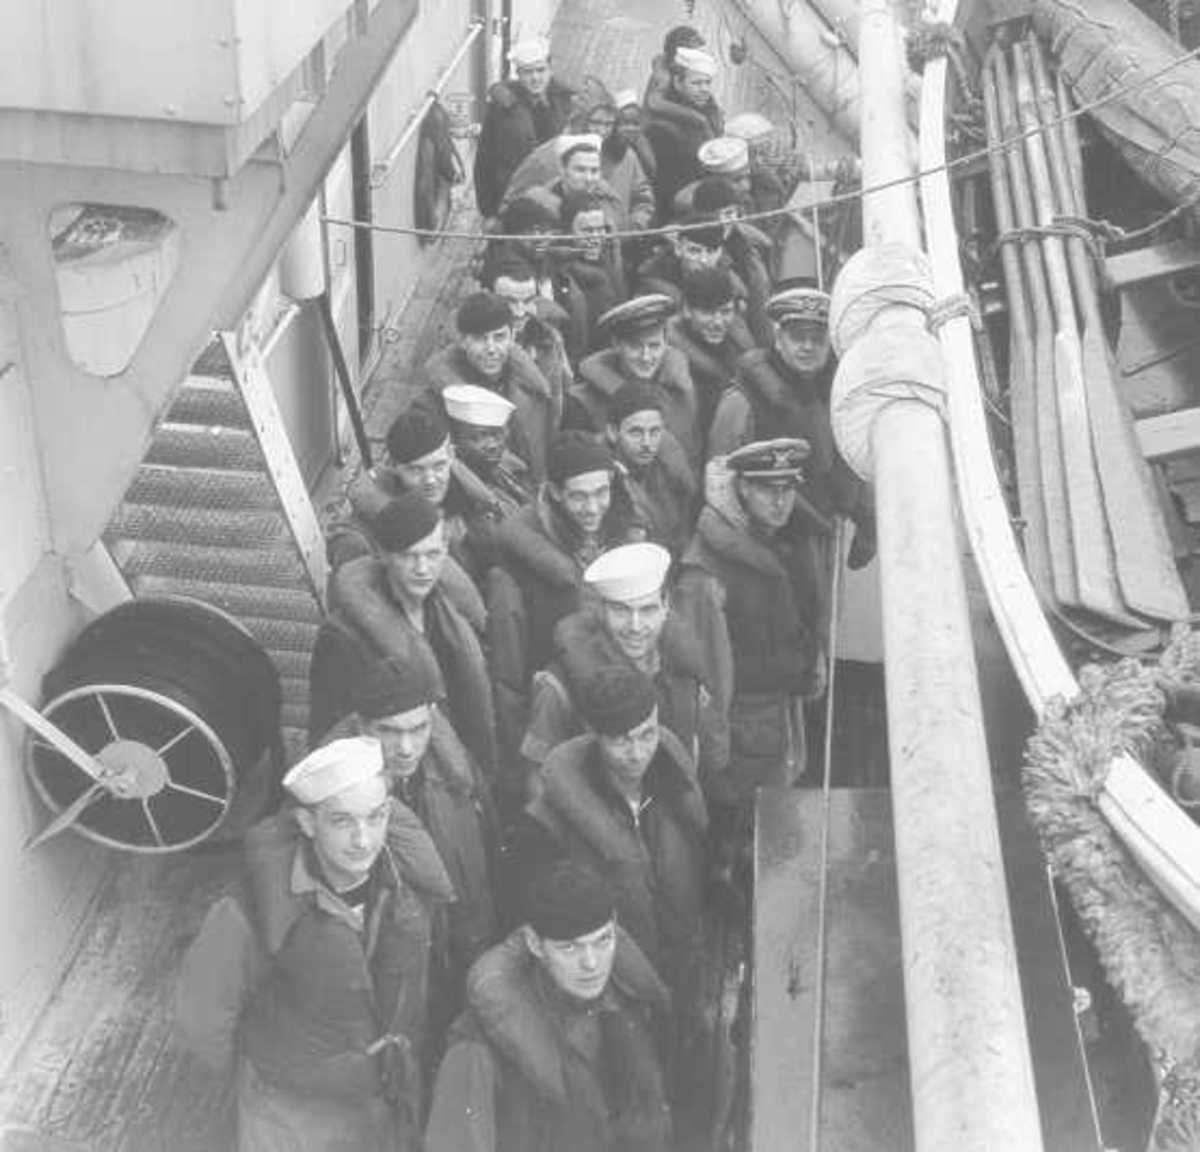 """All hands at Quarters on deck;"" circa late 1942 (original caption)."